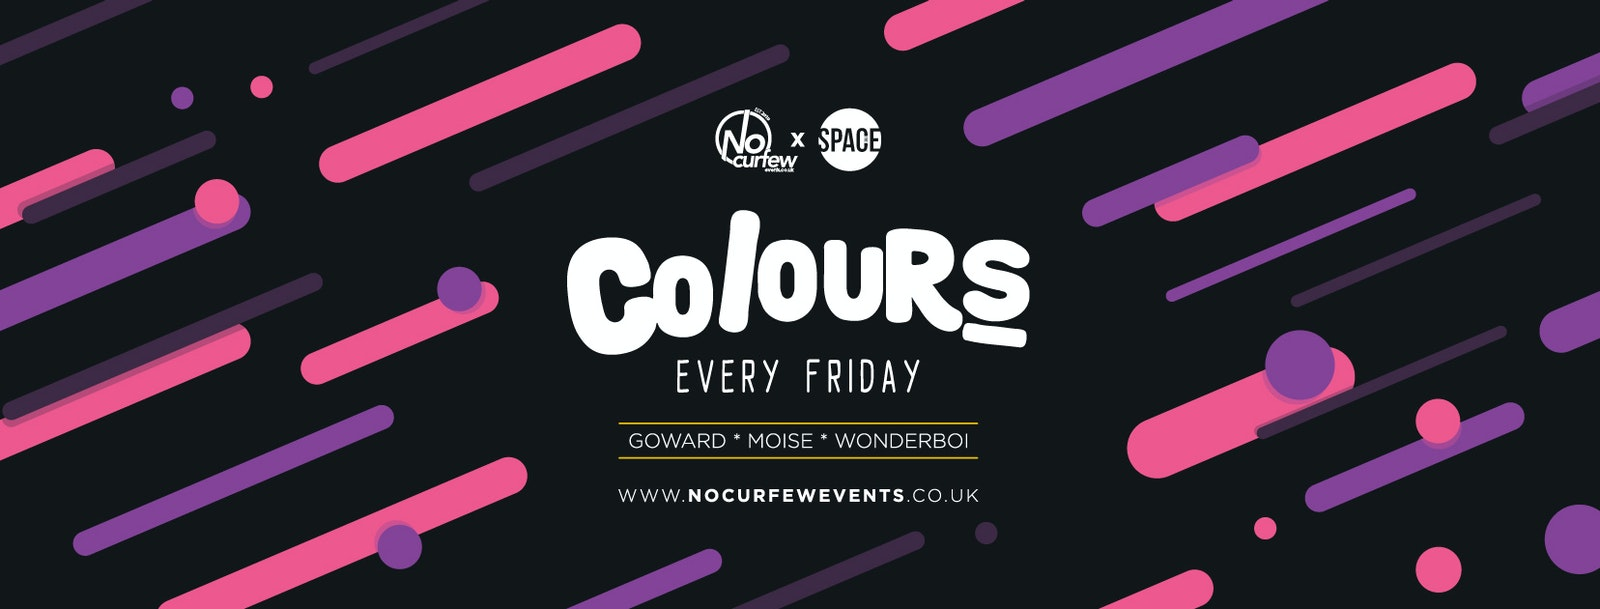 Colours Leeds at Space :: Half Price Tickets with a Free Drink before 12am!